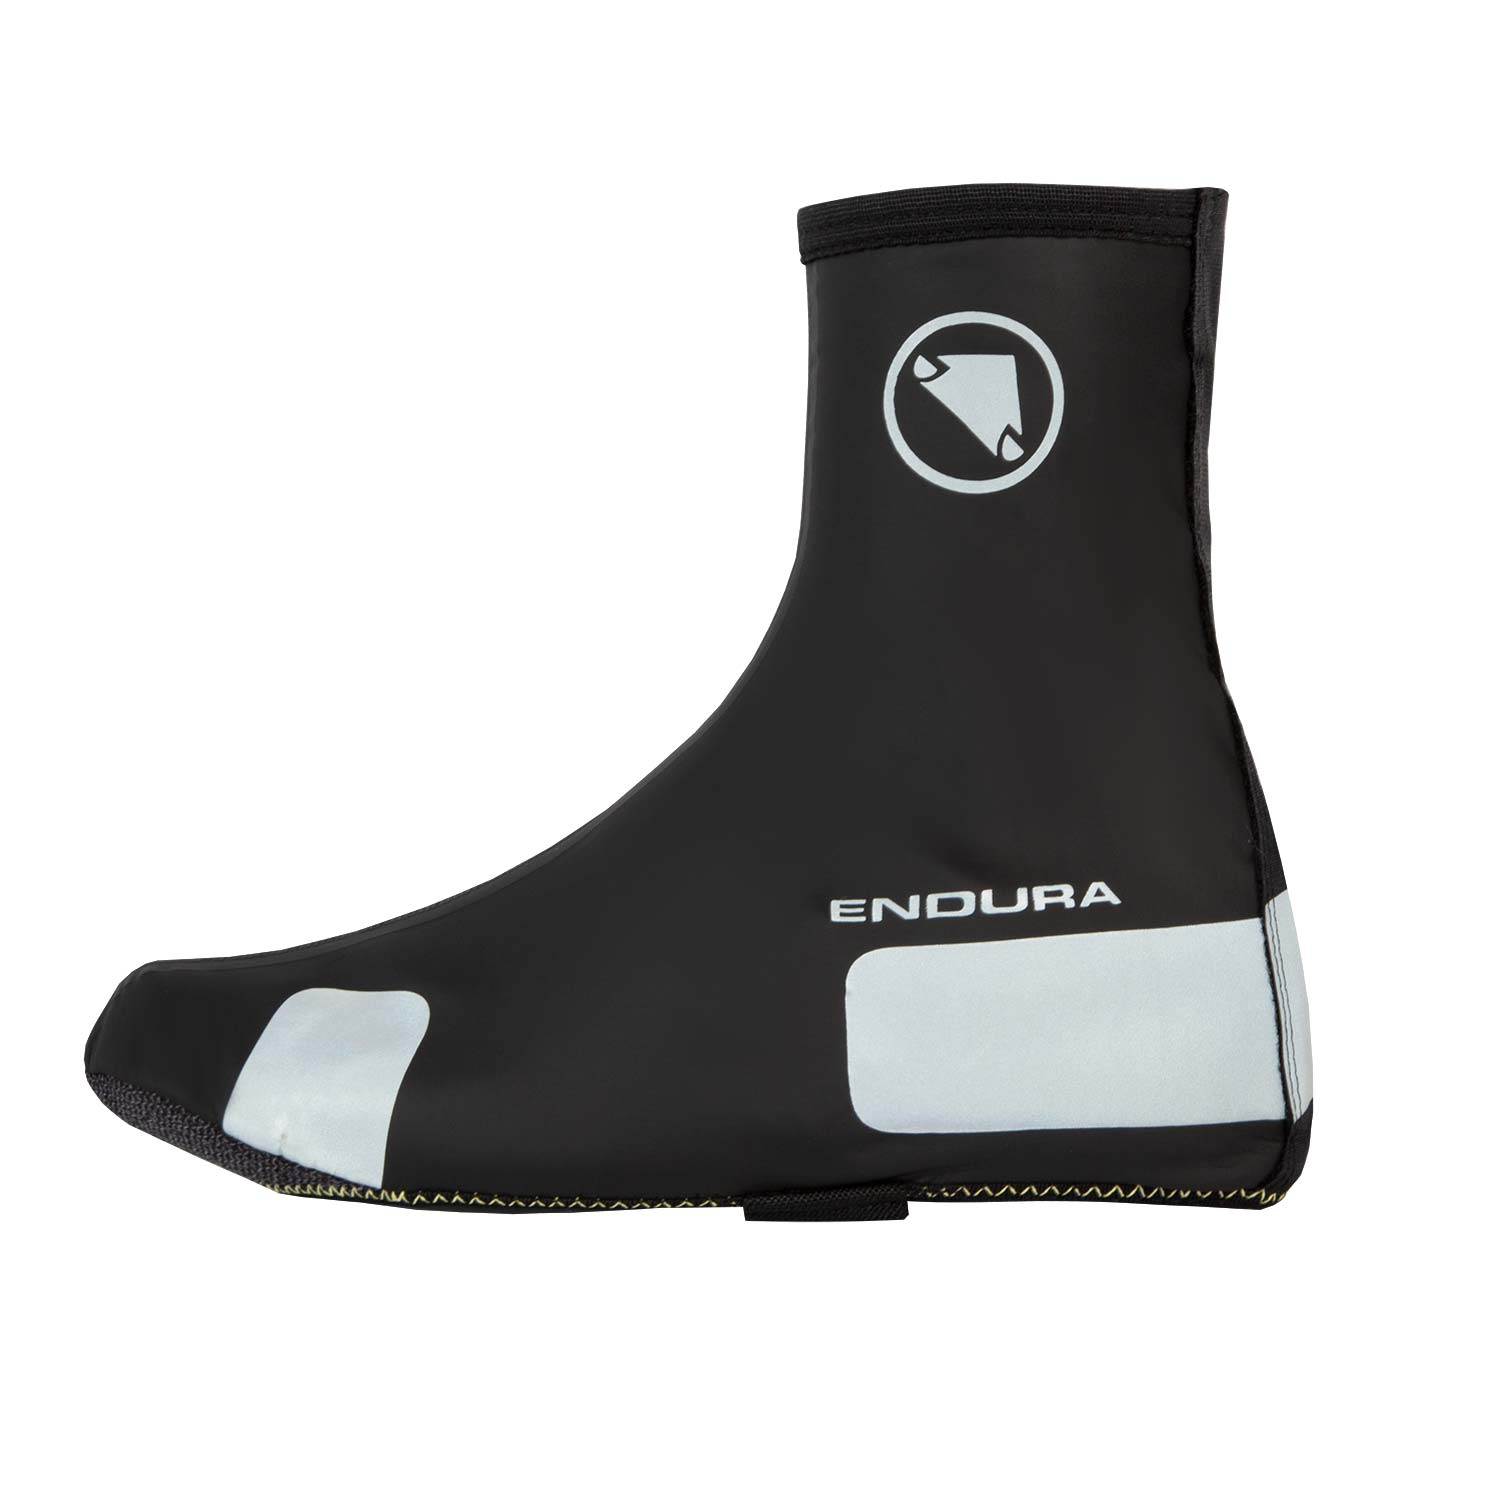 Endura Urban Luminite (Large) Waterproof Commuter Cycling Overshoes